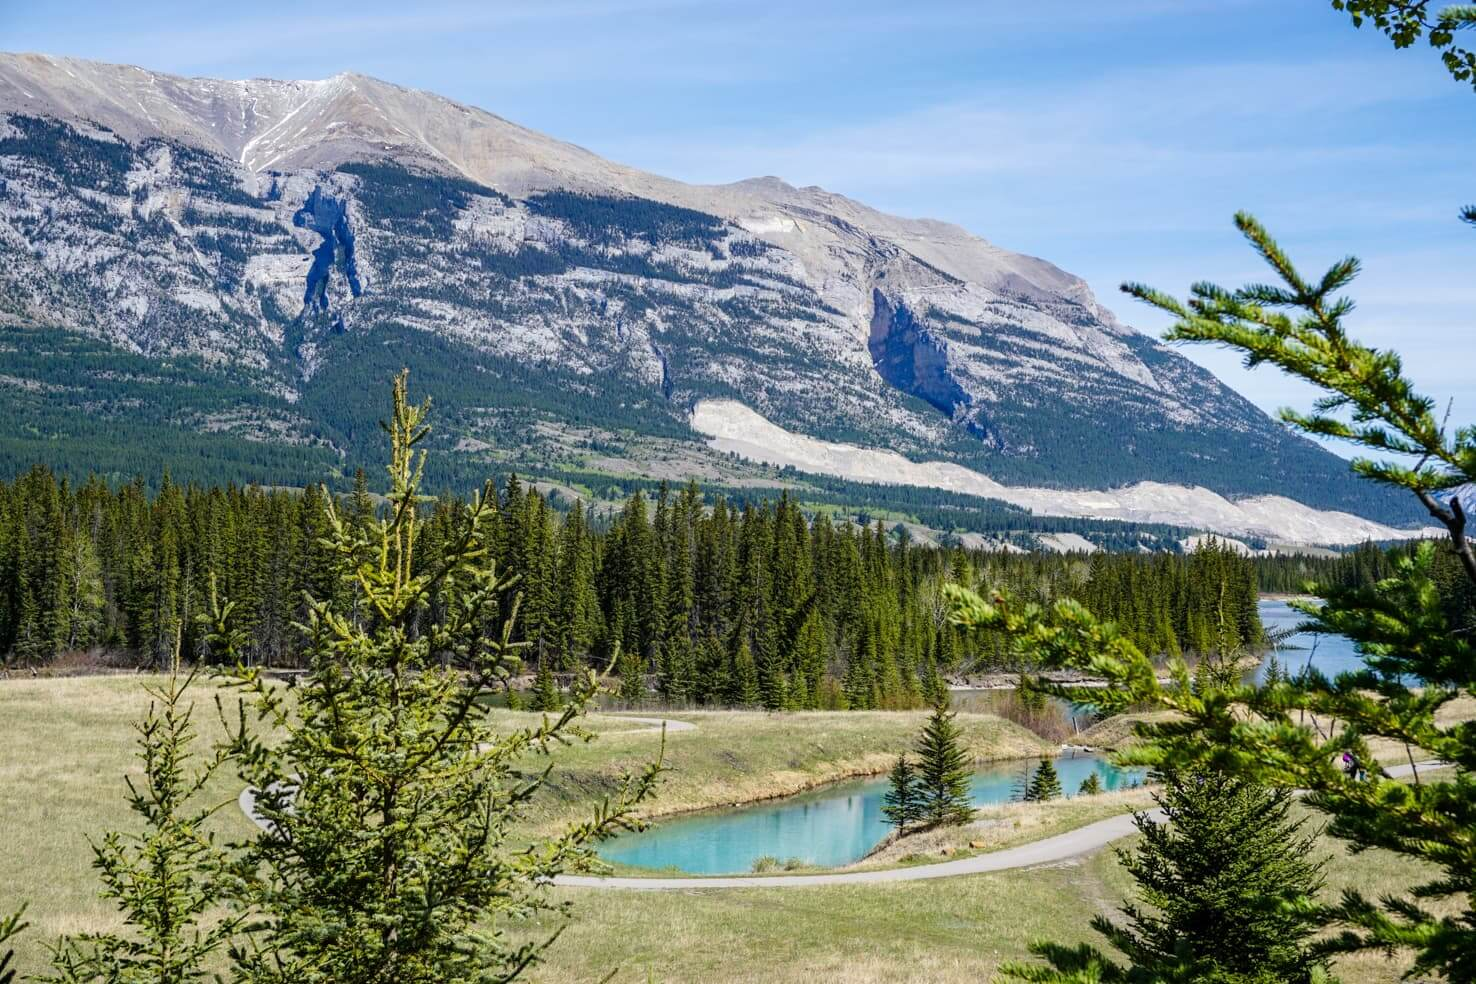 Western Canada Road Trip from Calgary to Vancouver - scenic view around Canmore